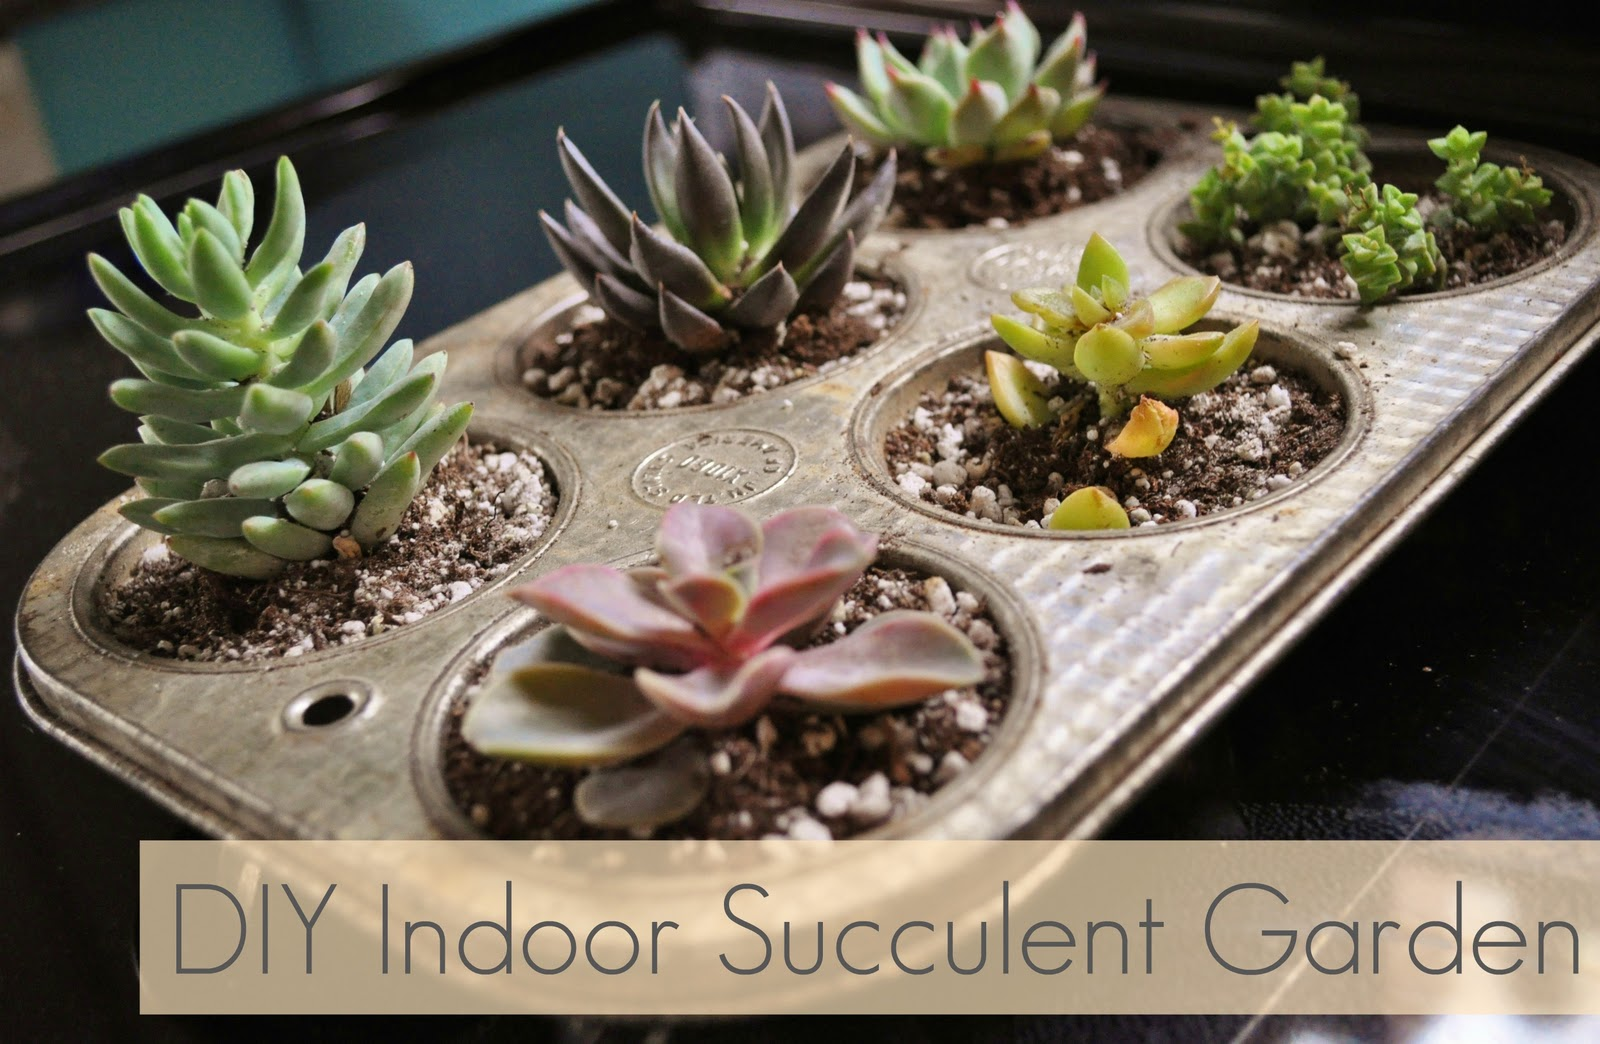 Uncategorized How To Make An Indoor Succulent Garden jessicandesigns diy indoor succulent garden 2 02 2012